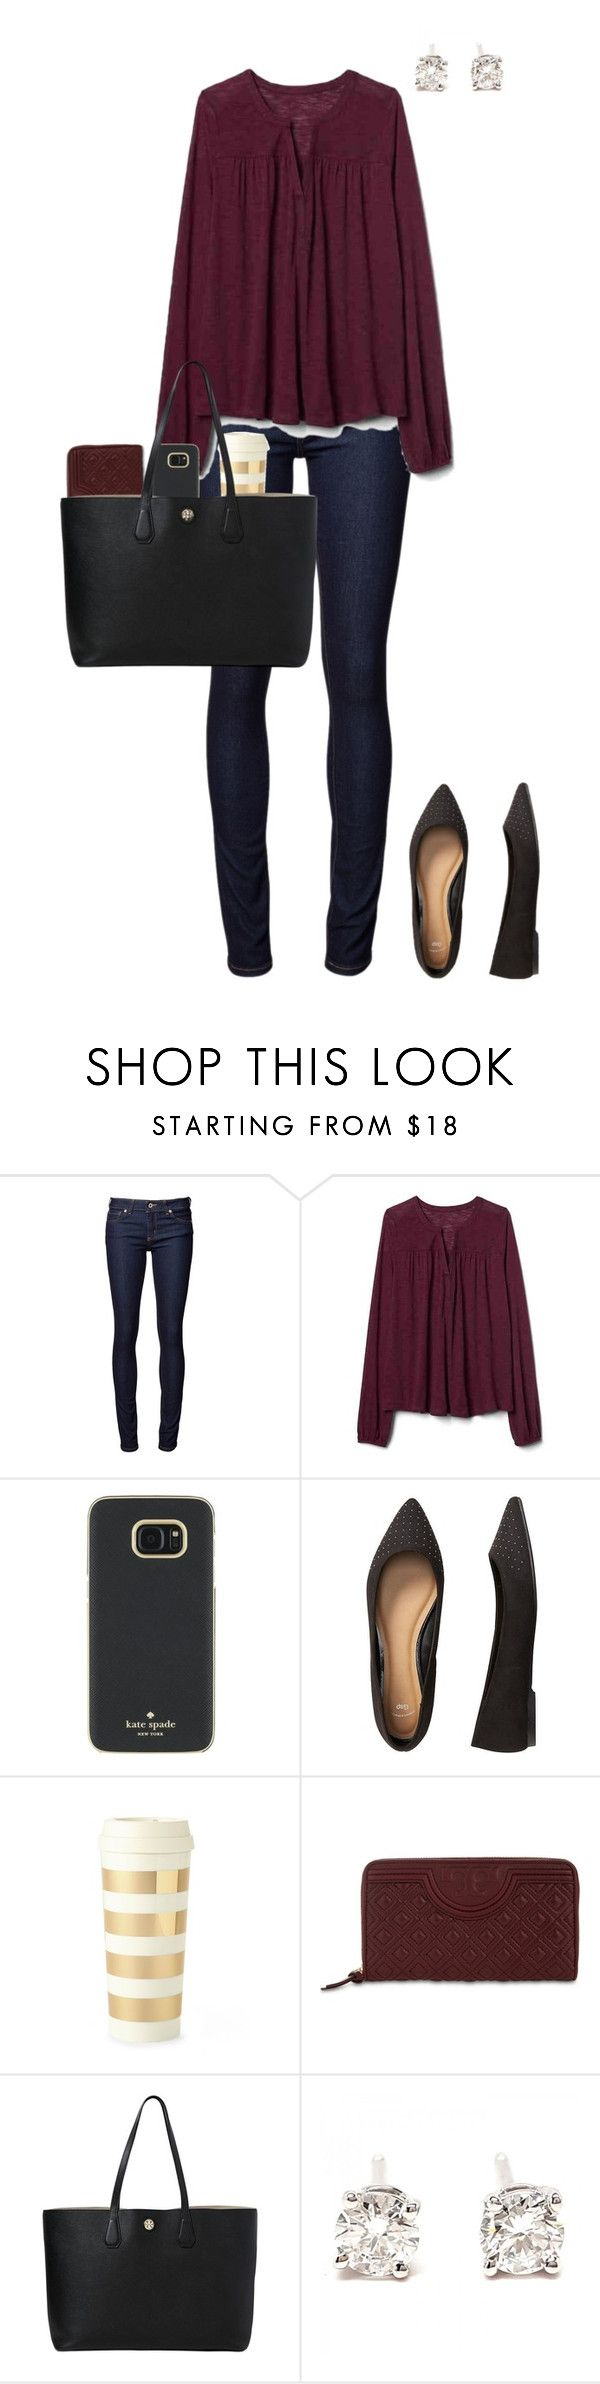 """""""Untitled #367"""" by blueblondie89 ❤ liked on Polyvore featuring Naked & Famous, Gap, Kate Spade, Tory Burch and Tiffany & Co."""